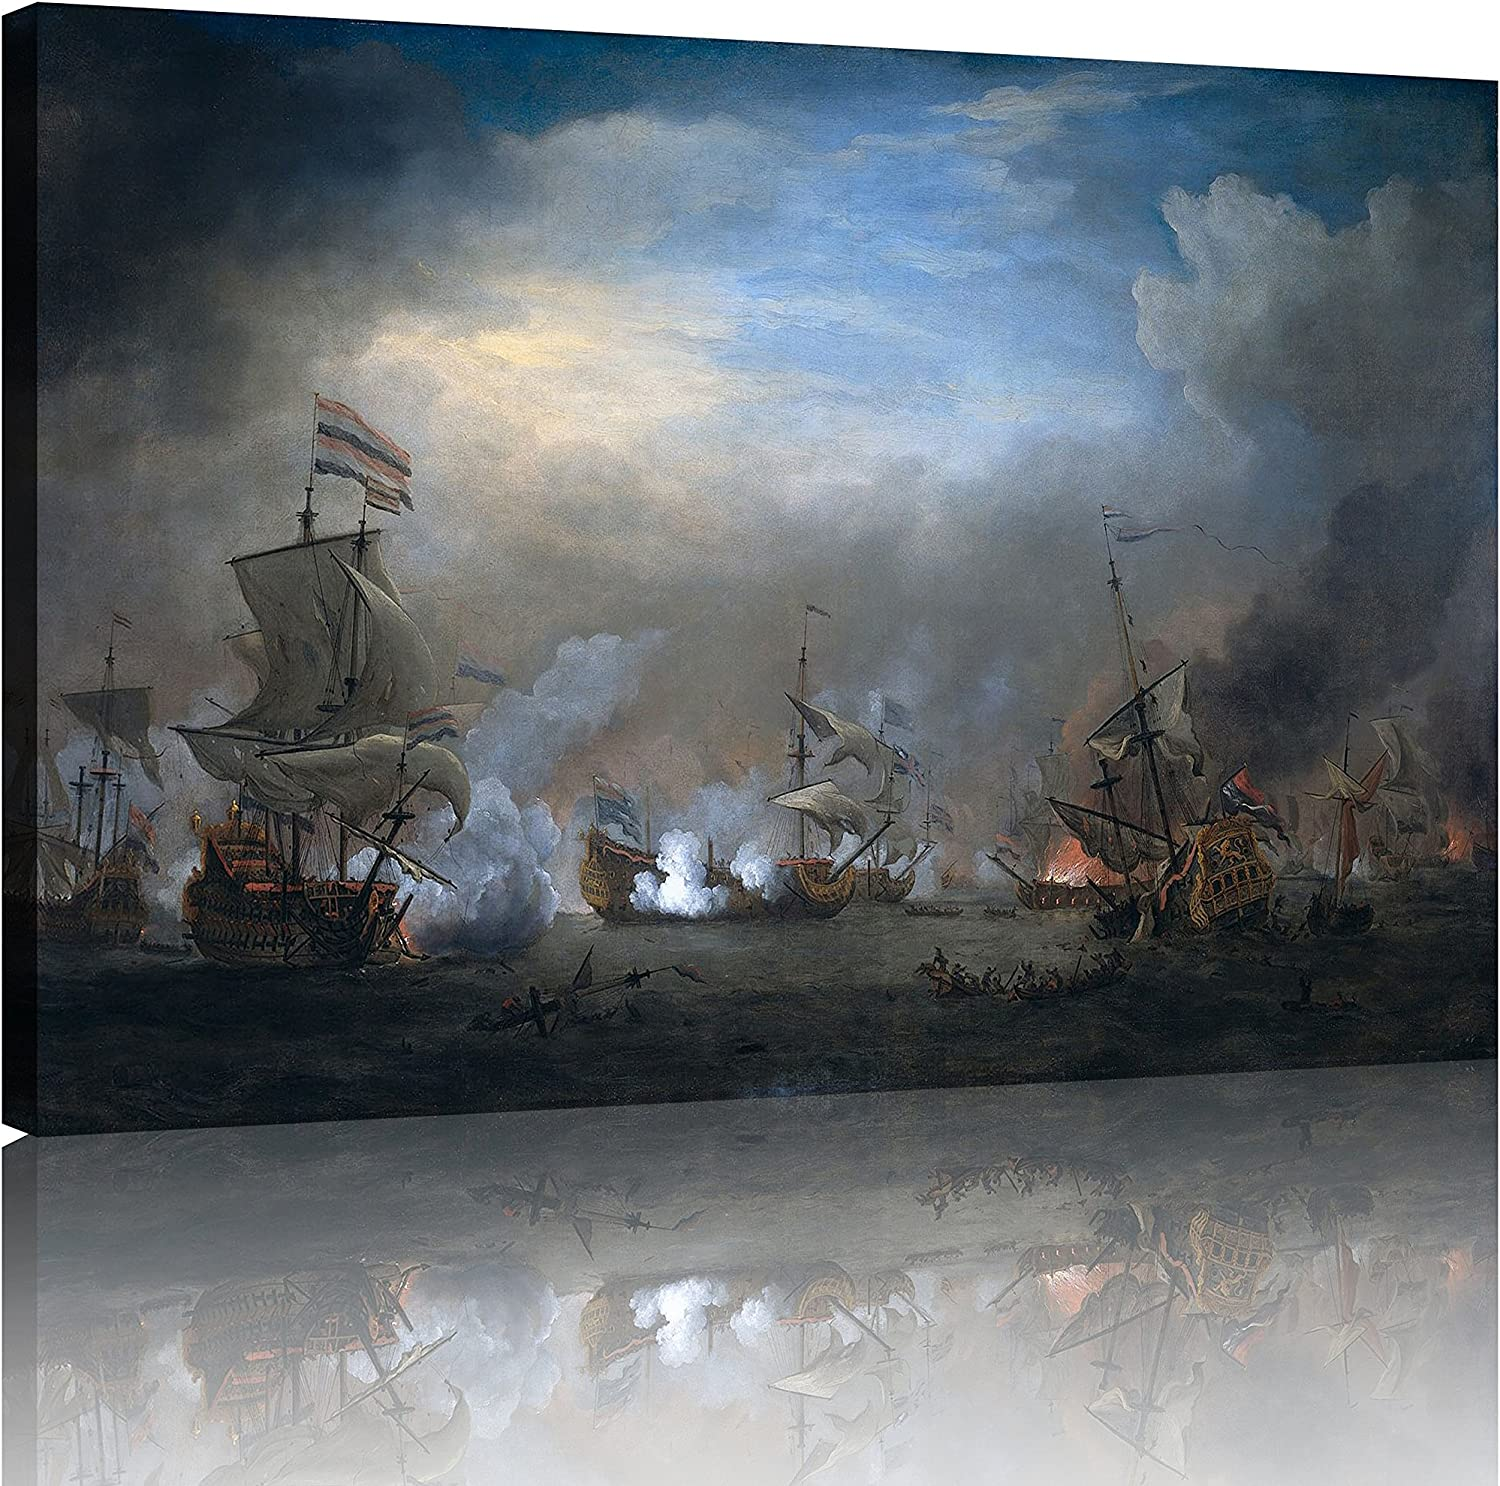 NAN Wind 1 Piece Historical Ship Naval Battle Prints Picture Landscape Wall Decor Paintings on Canvas Framed Ready to Hang for Home Decor Bedroom Decor